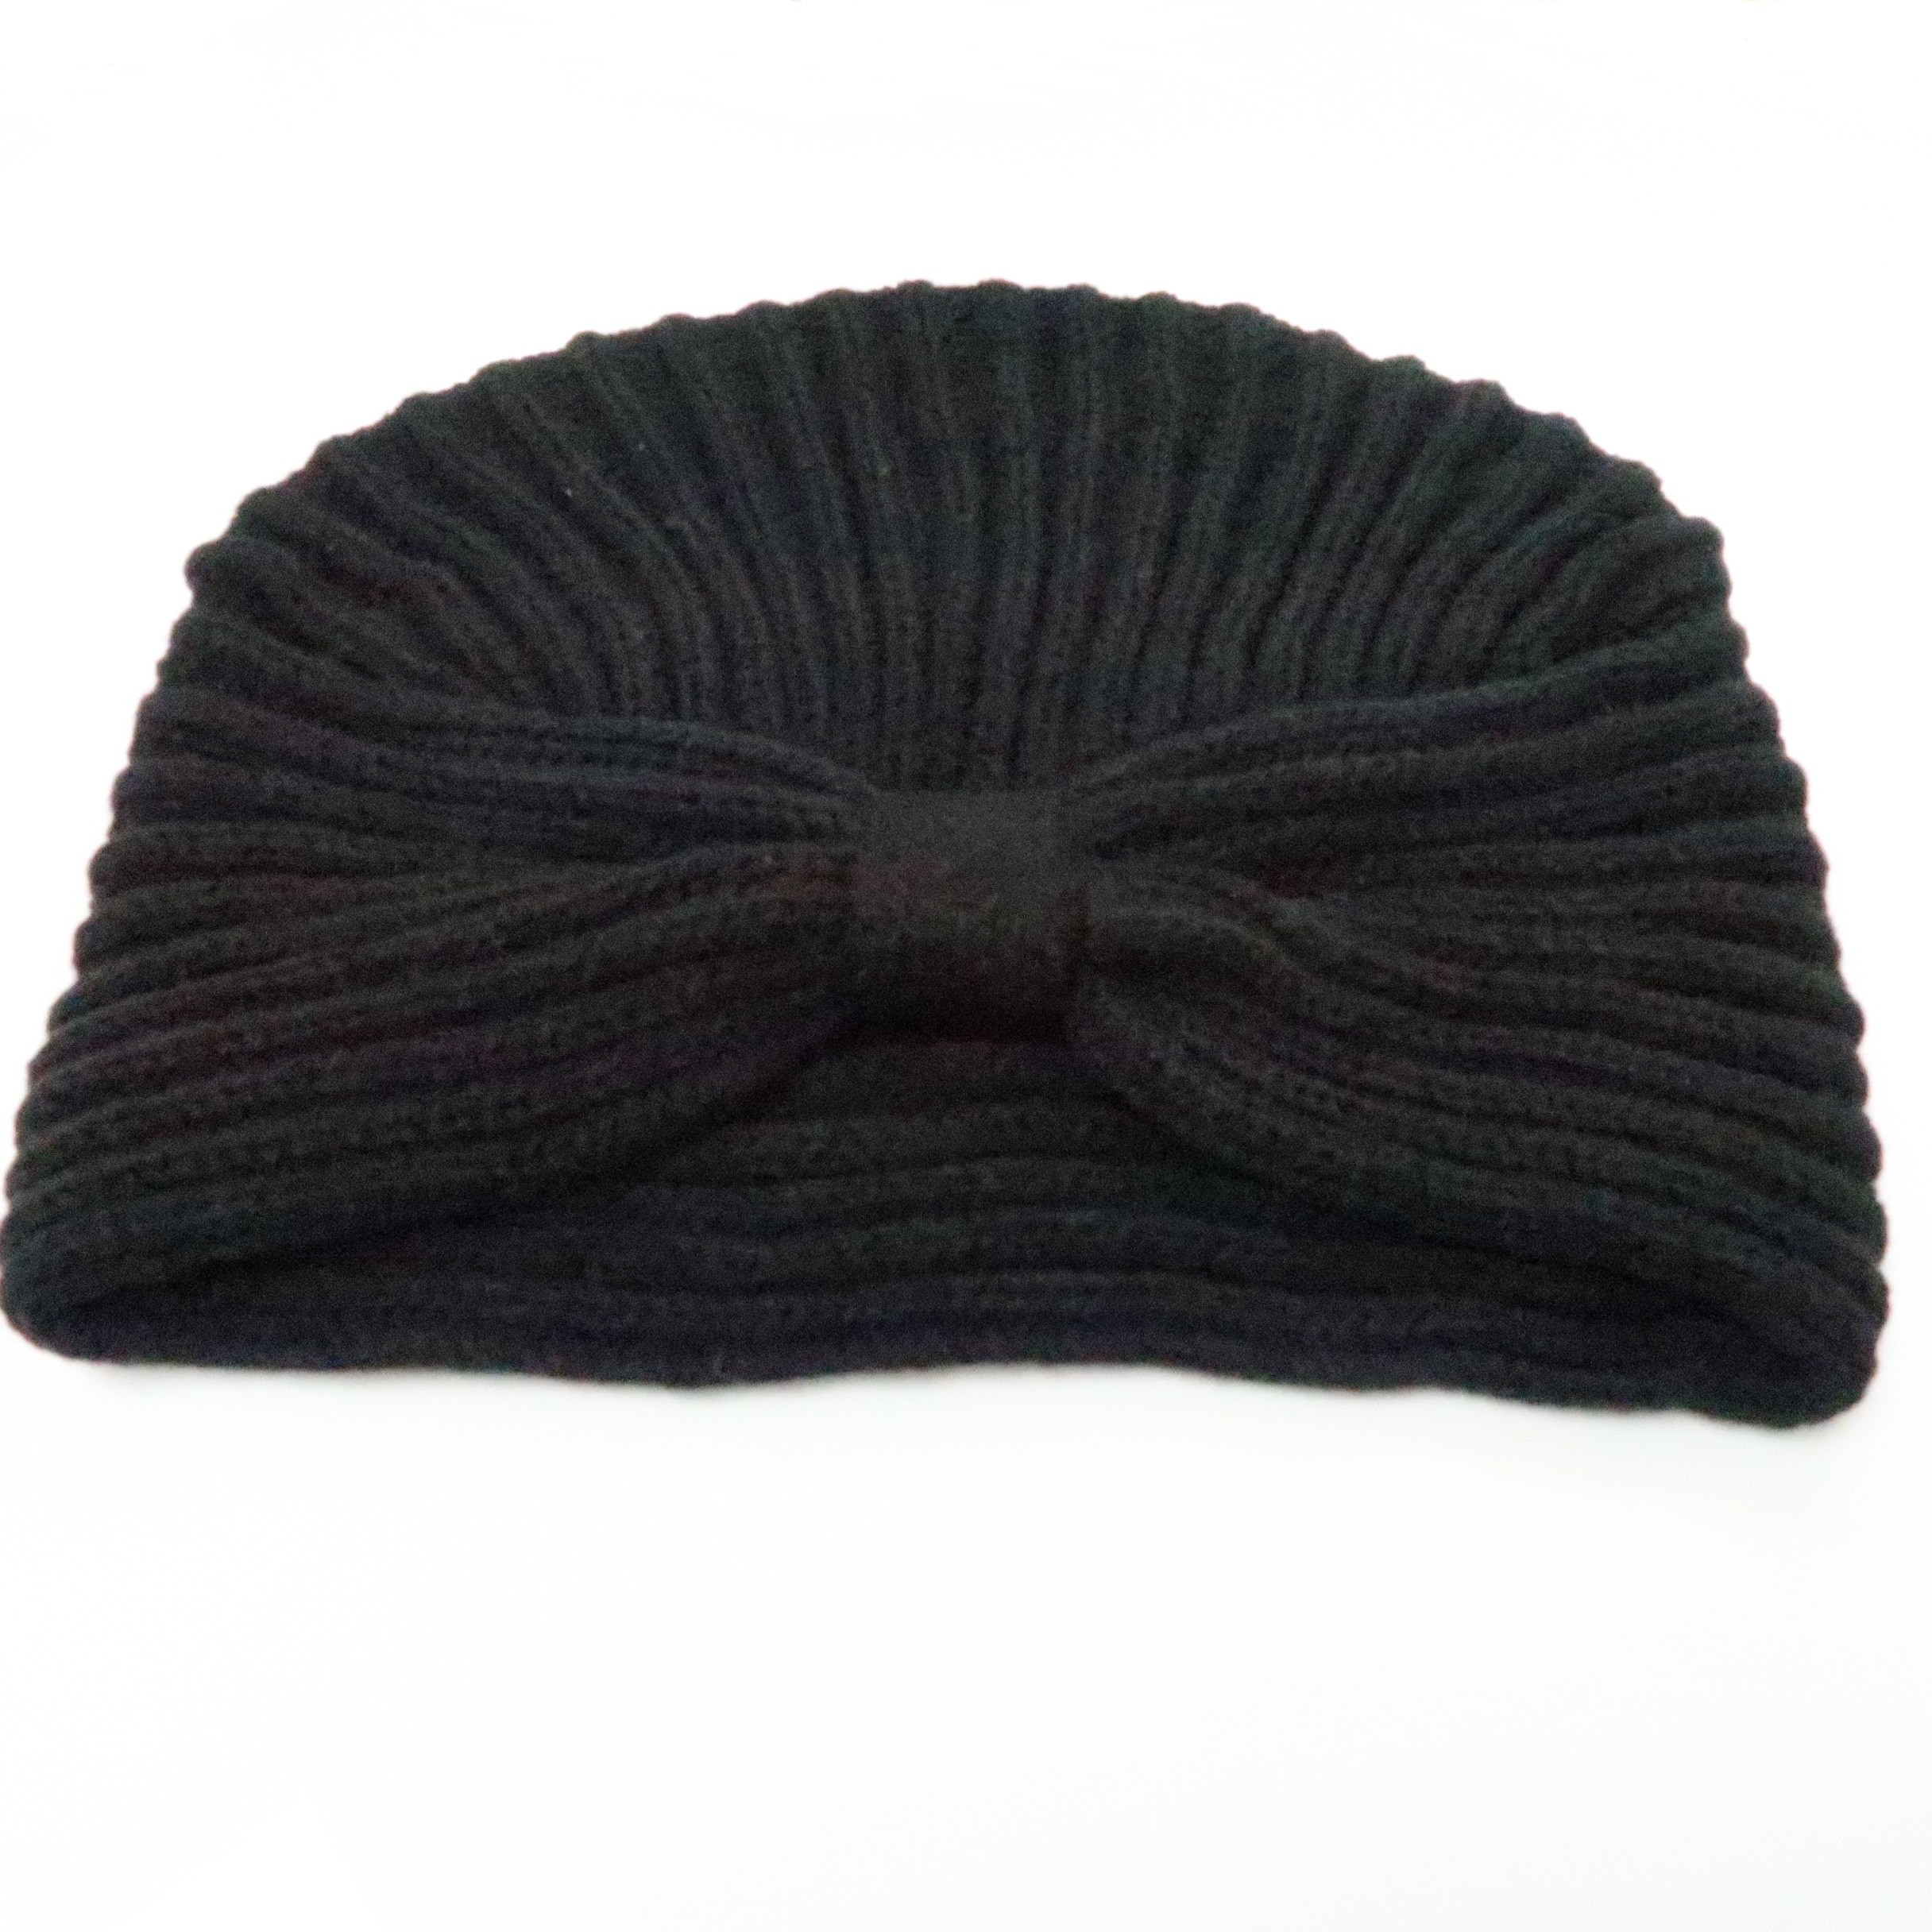 b1d21a98f26 KBB Black Striated Design Knottled Beanie Hat (3 Hats Lot) - Apparel    Shoes